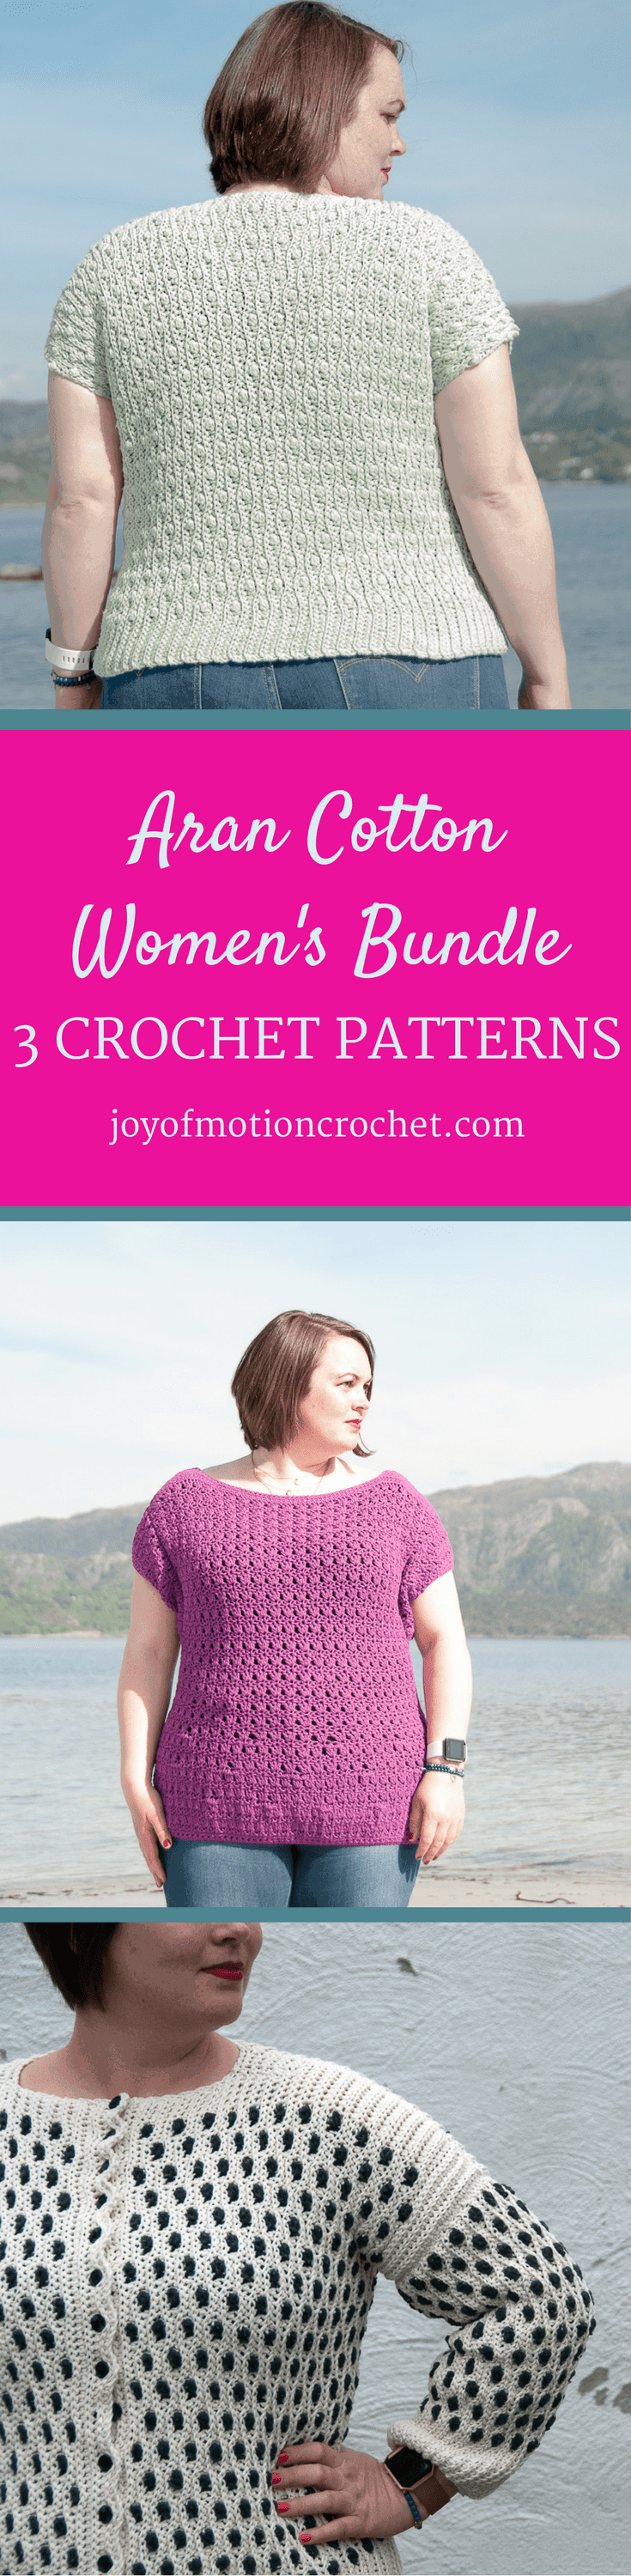 Aran Cotton Women's Bundle. Bundle Crochet Patterns. 3 crochet patterns E-book. The Sidus Cardigan a crochet pattern. Woman's cardigan crochet pattern with skill level intermediate. The Solis top a crochet pattern. Woman's top crochet pattern with skill level intermediate. The Choro top a crochet pattern. Woman's top crochet pattern with skill level easy. Make this fashionable crochet top with your own crochet hook & yarn.